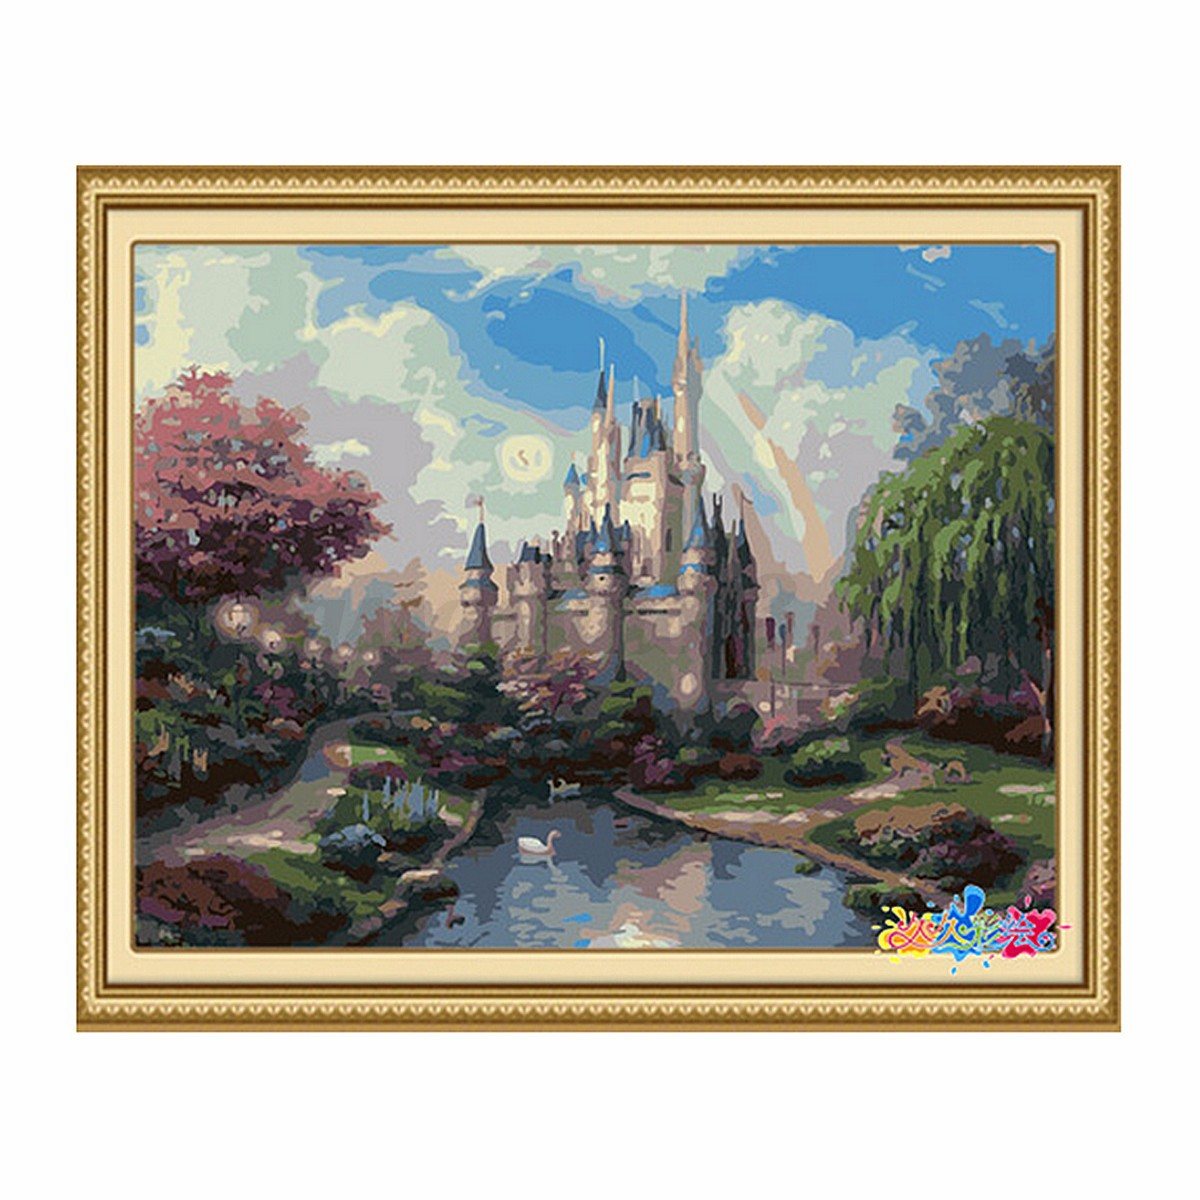 Diy paint by number kit beautiful painting on canvas home wall decor 16 39 39 x20 39 39 ebay - A beautiful painting on wall ...